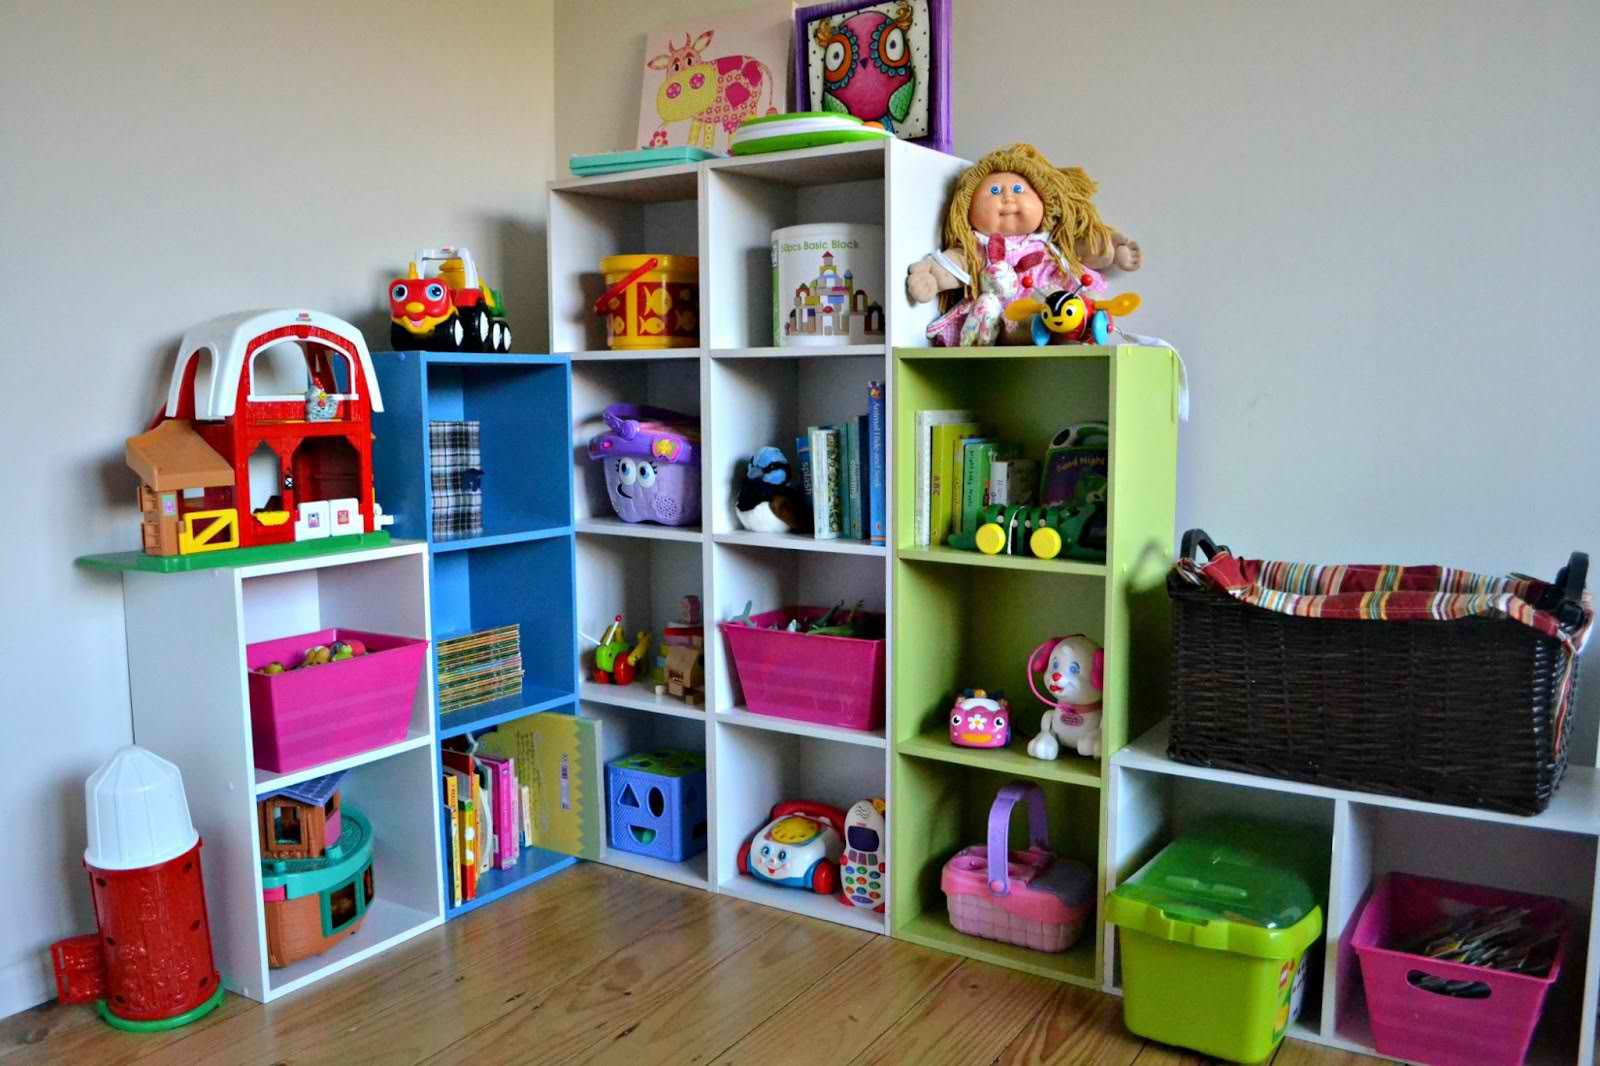 7 1 Toy Storage Ideas Diy Plans In A Small Space Your Kids Will